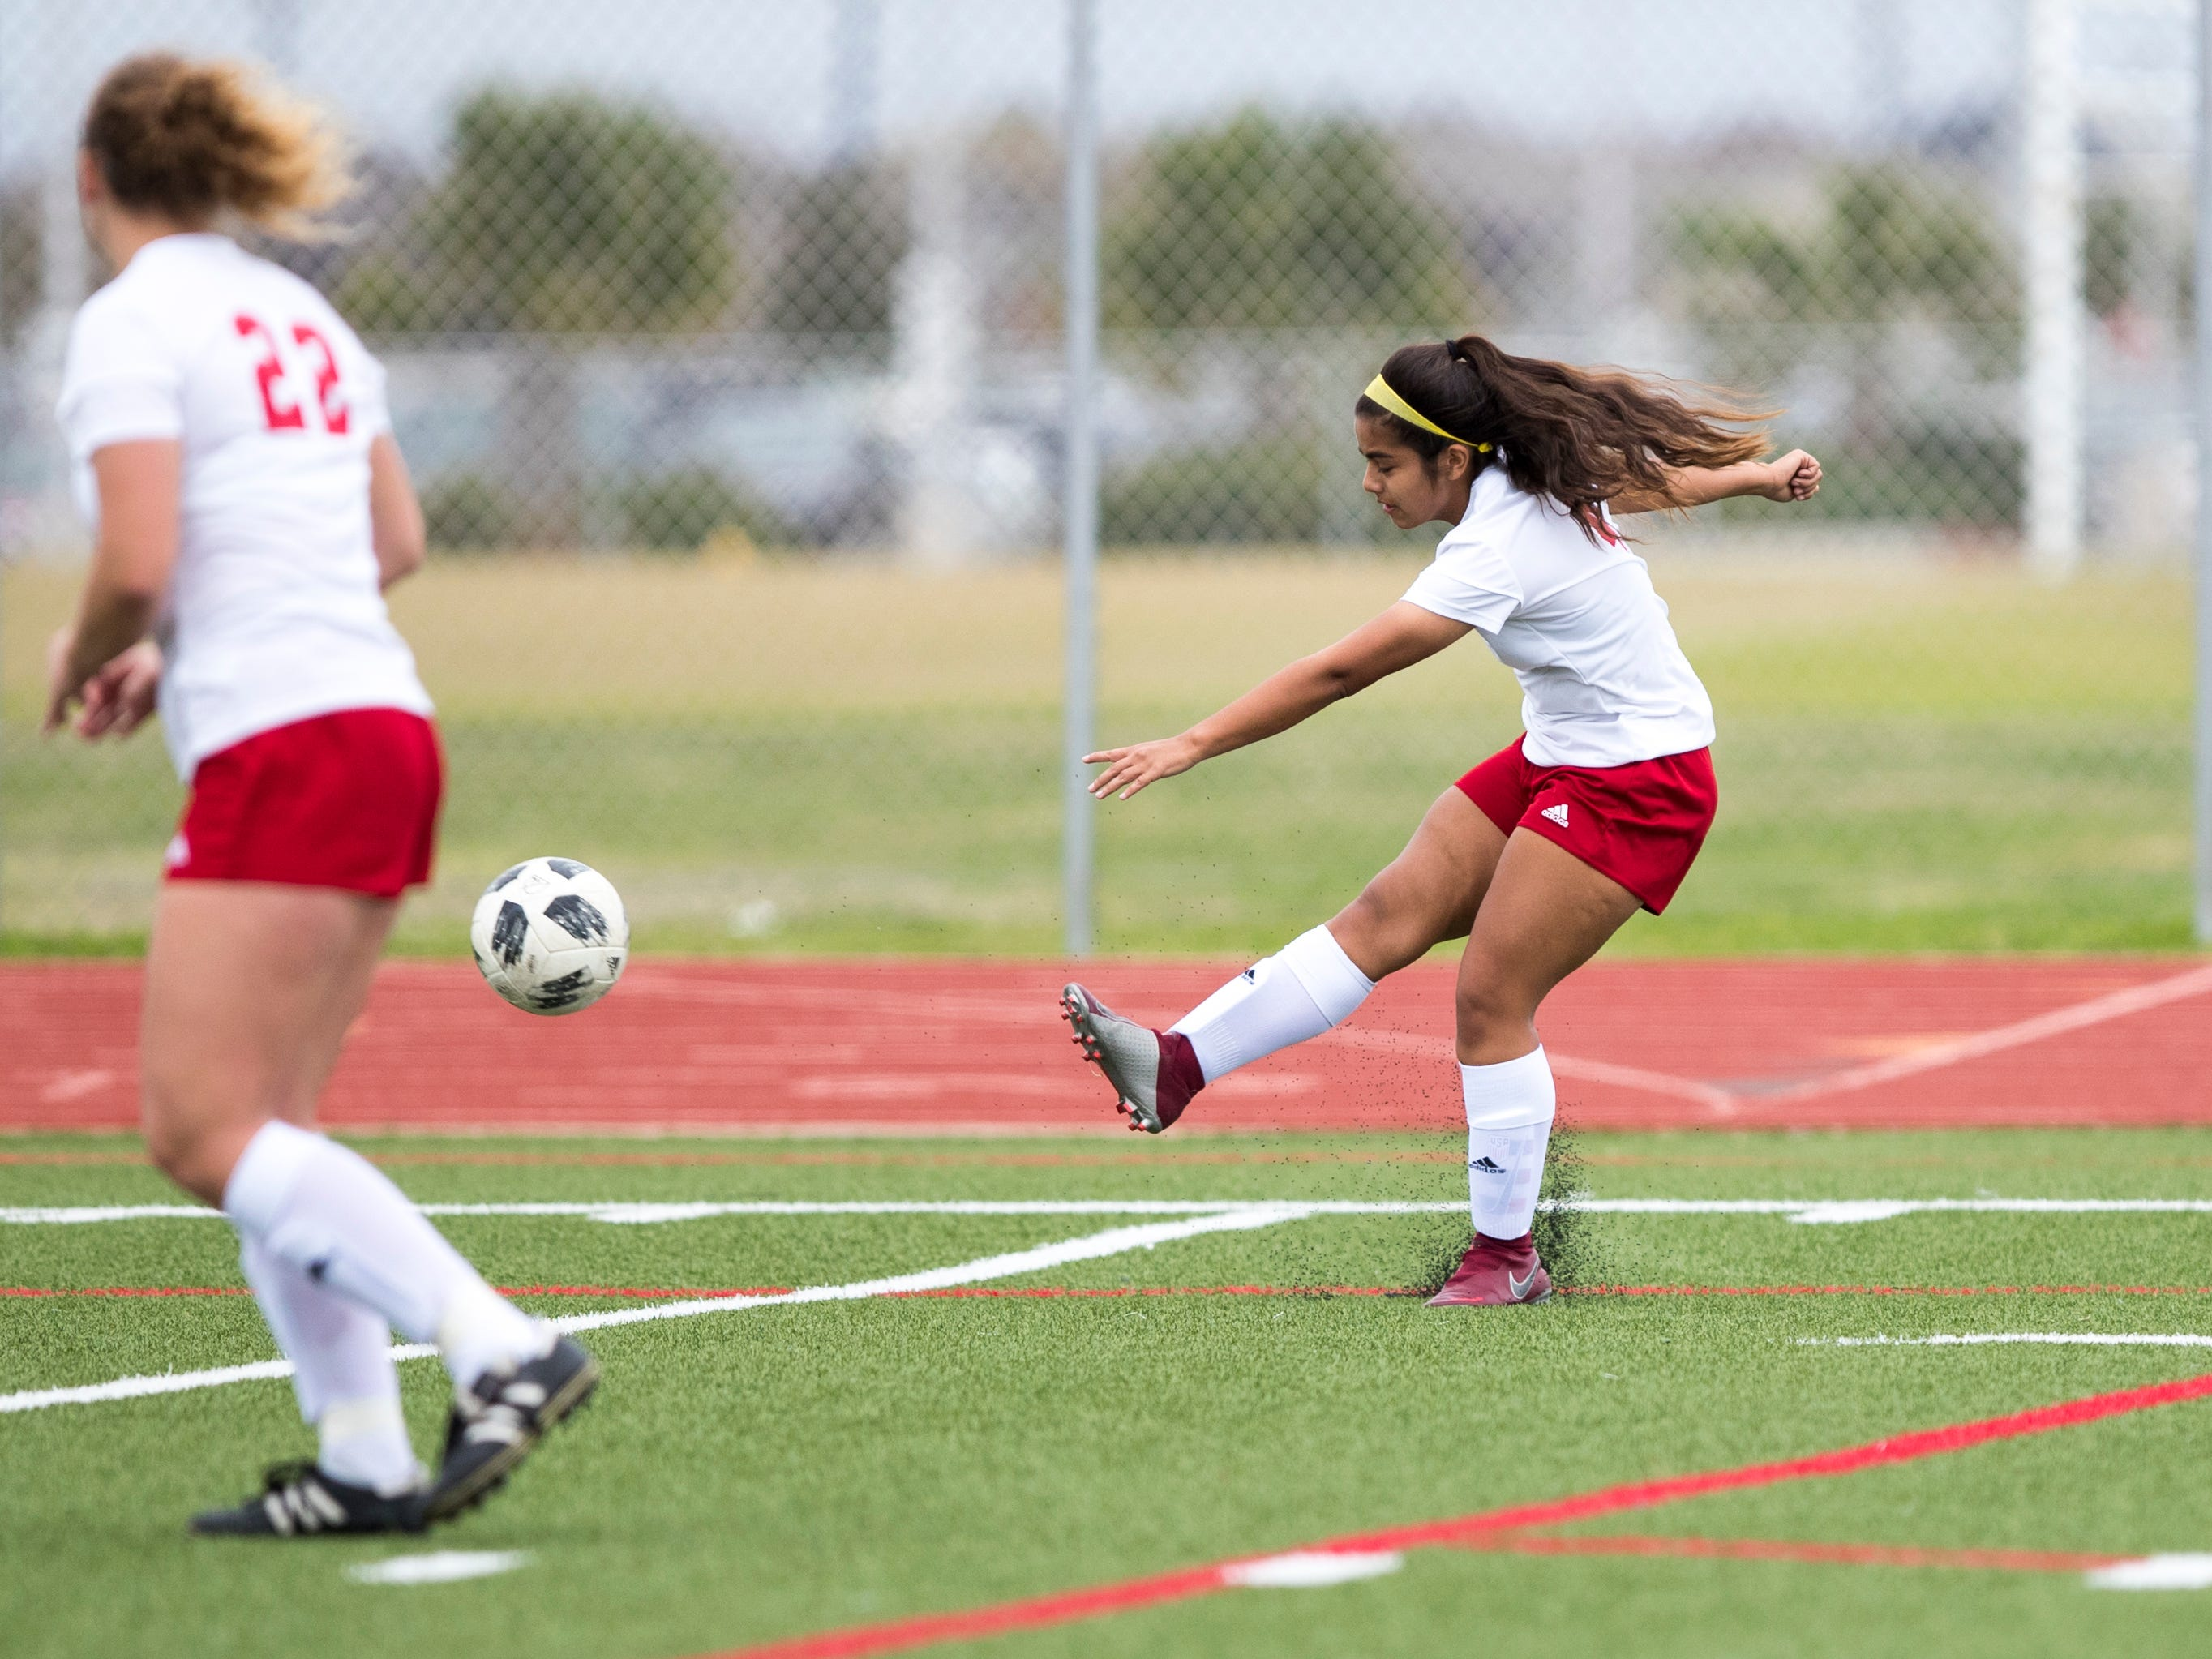 Veterans Memorial's Camryn Garcia scores in the game against Carroll in the Mira's Soccer Tournament at Veterans Memorial High School on Friday, January 11, 2019. The Eagles won the game 5-0.